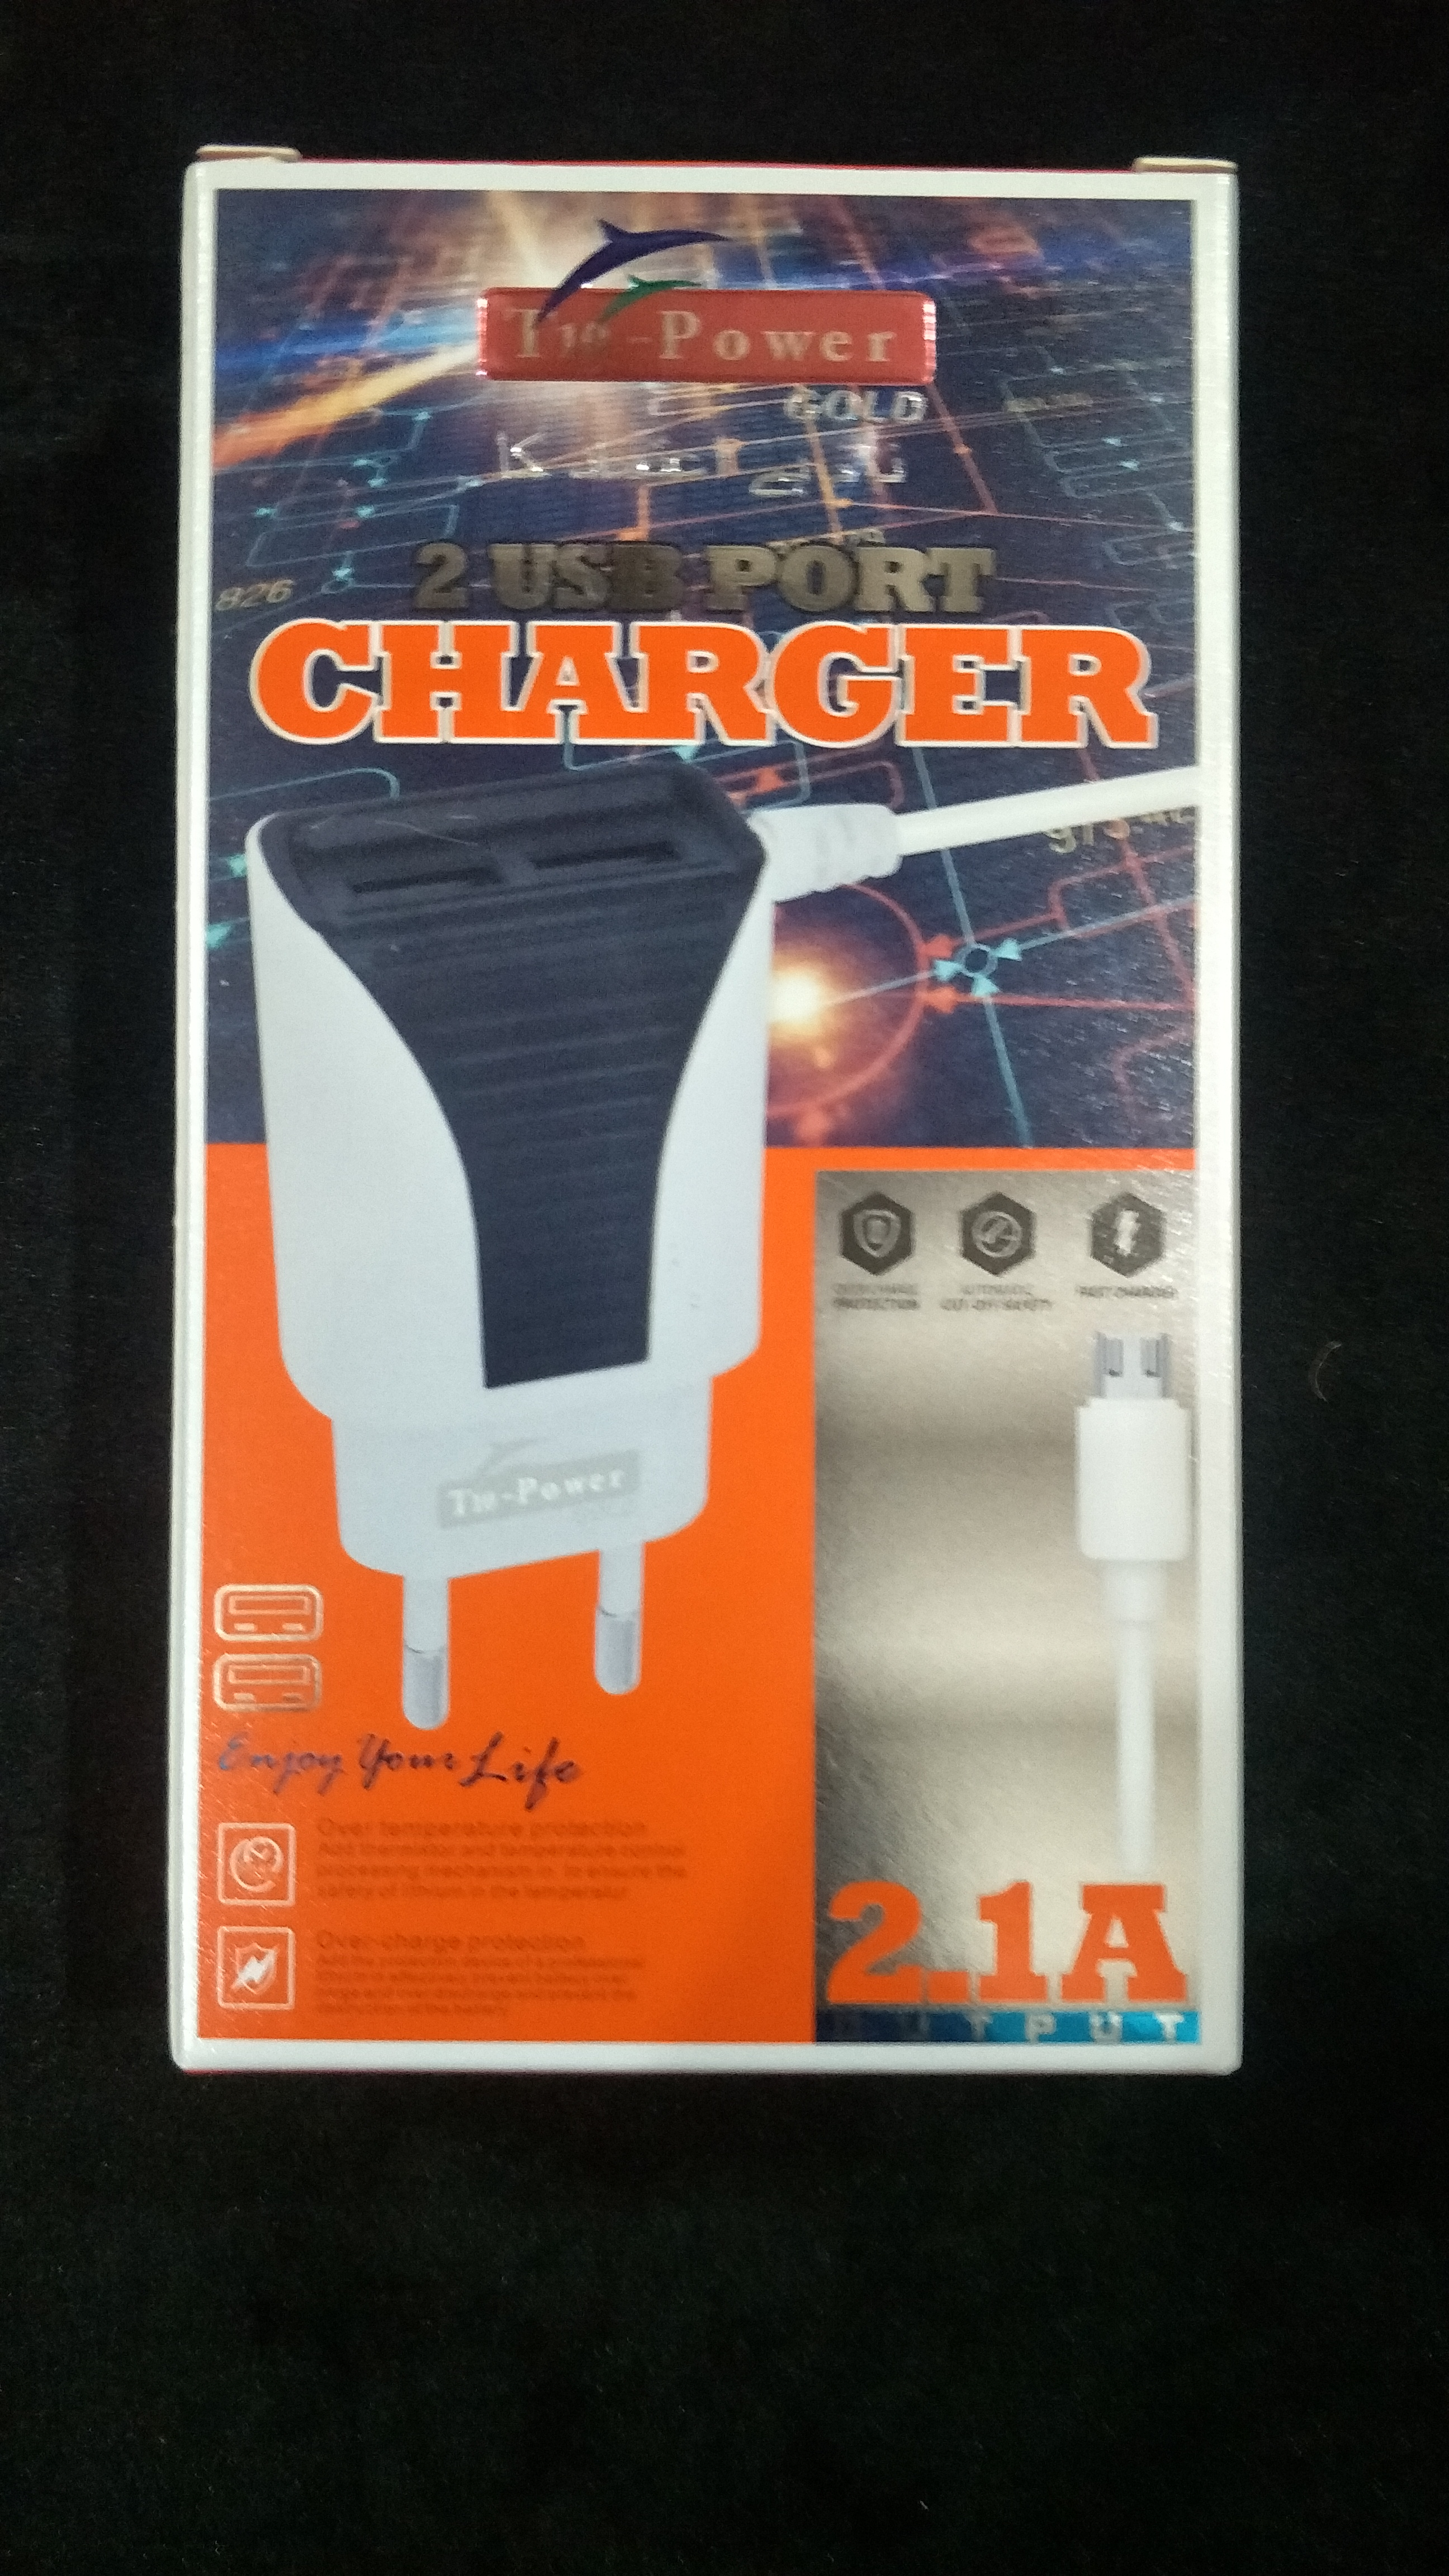 T-10 Imported 2 USB Fast Charger 2.1 Ampere